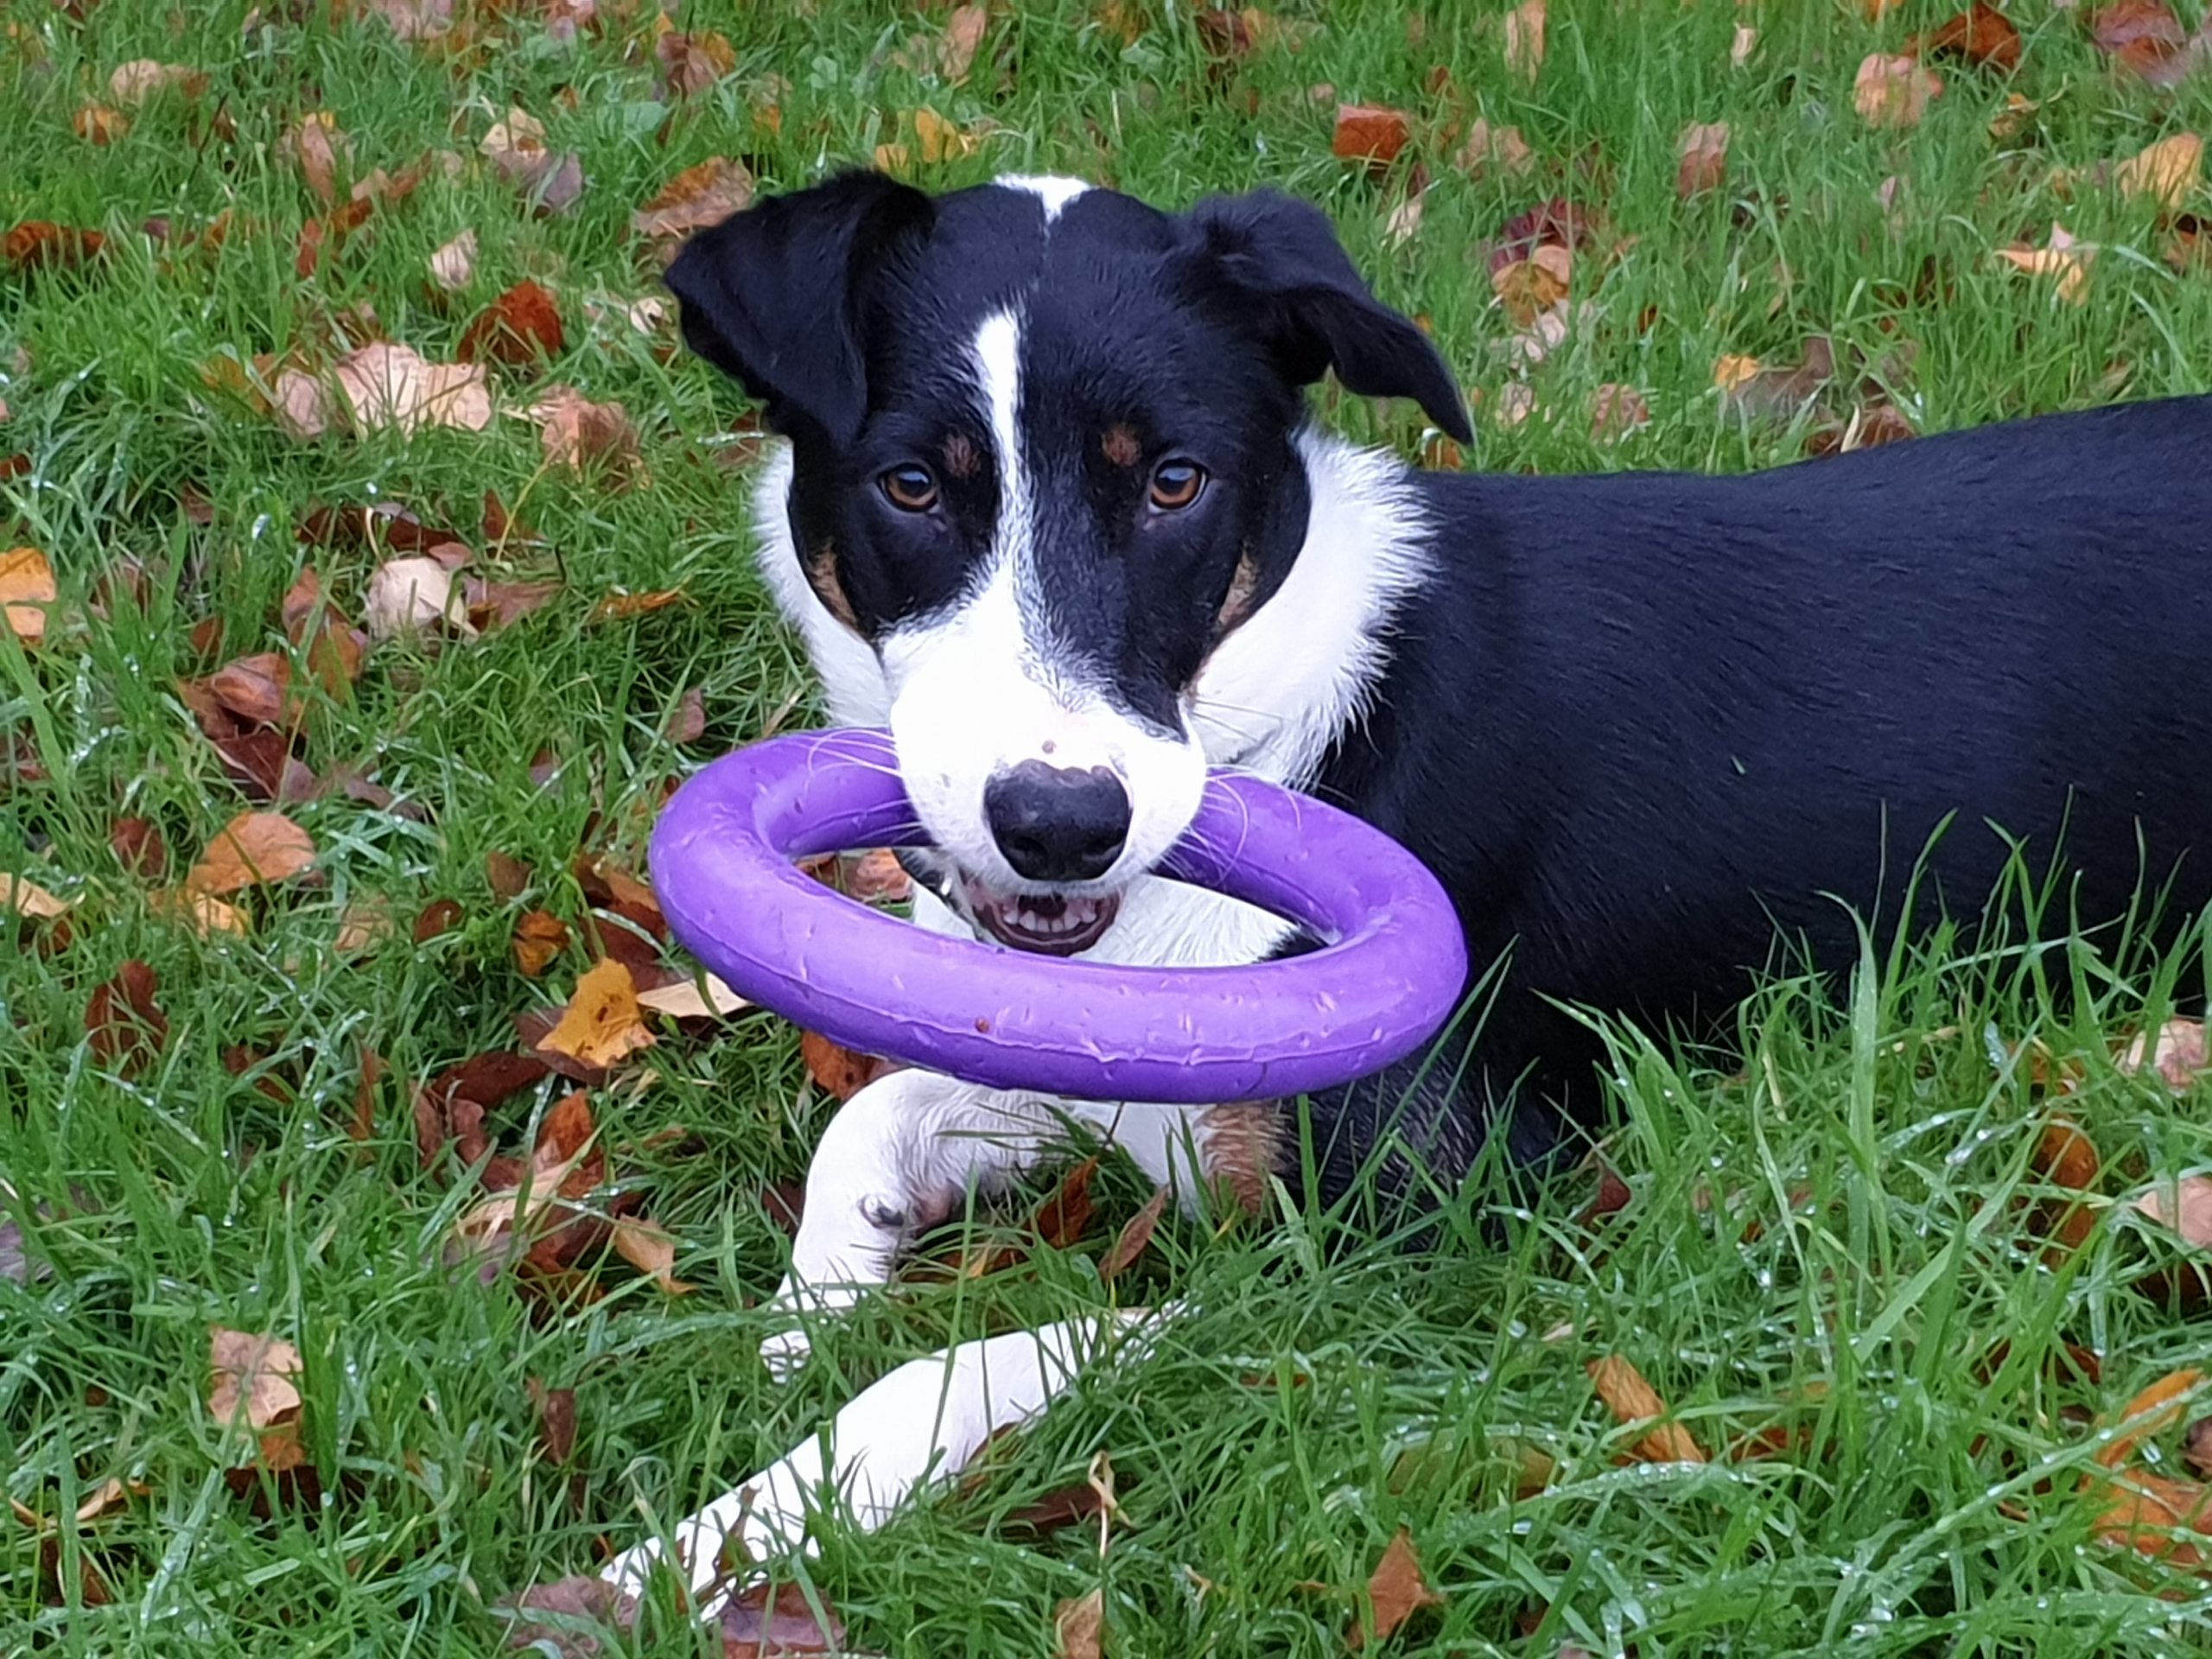 Dog training, Puller dog toy